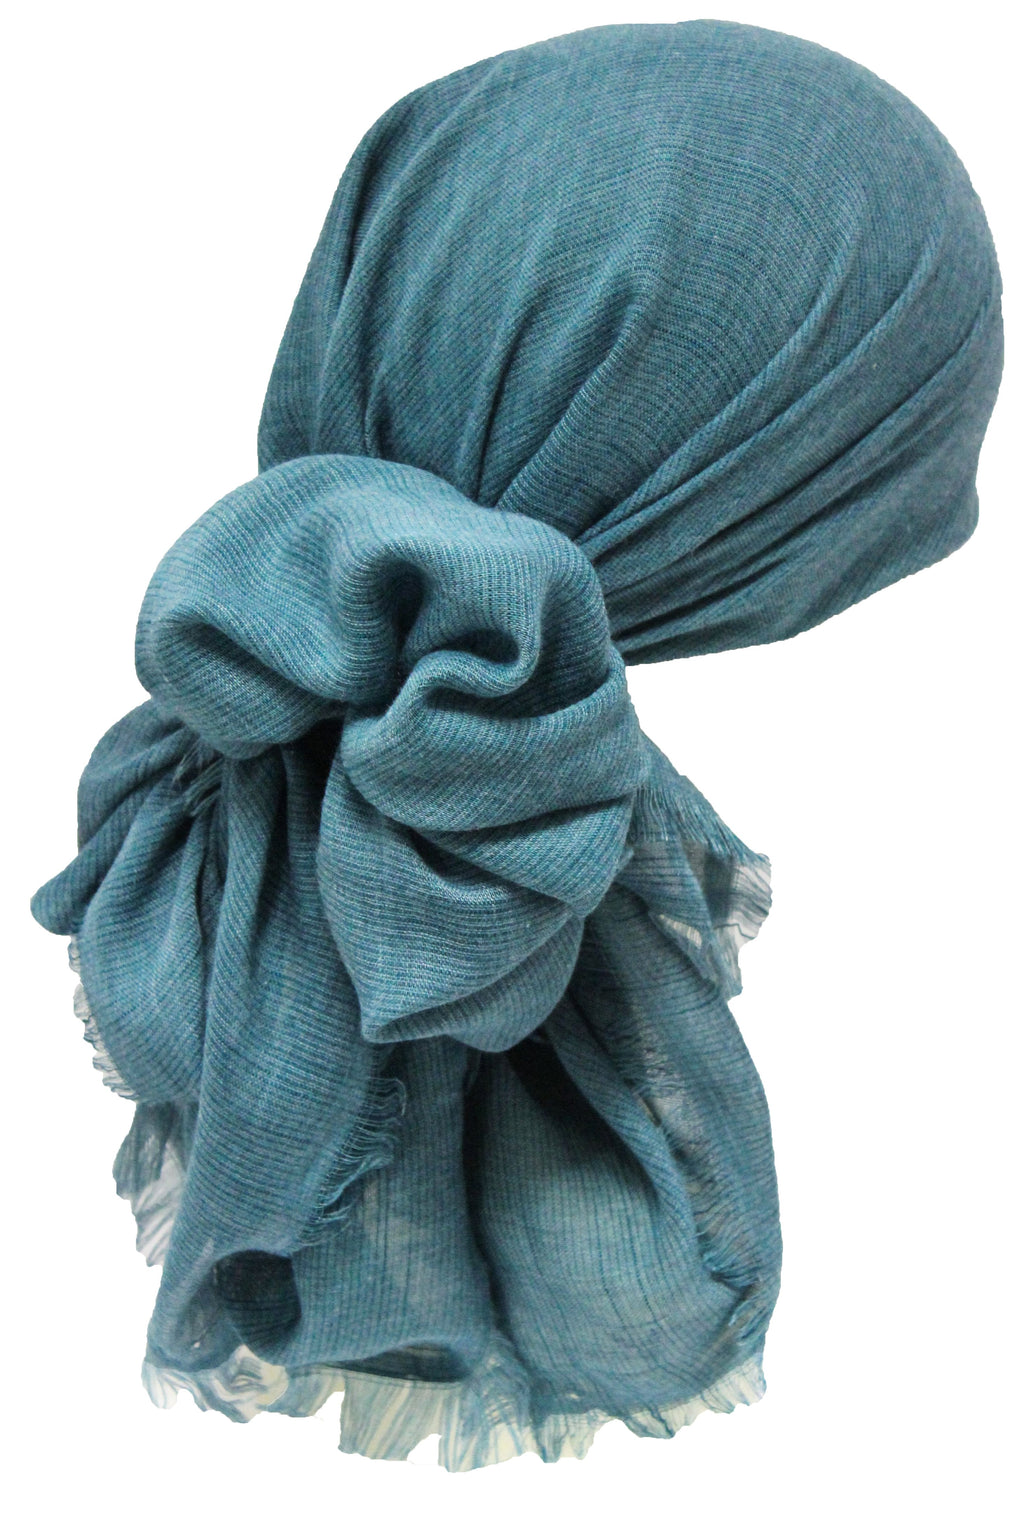 Deresina Seasonal Chemo Headscarf Linum Teal